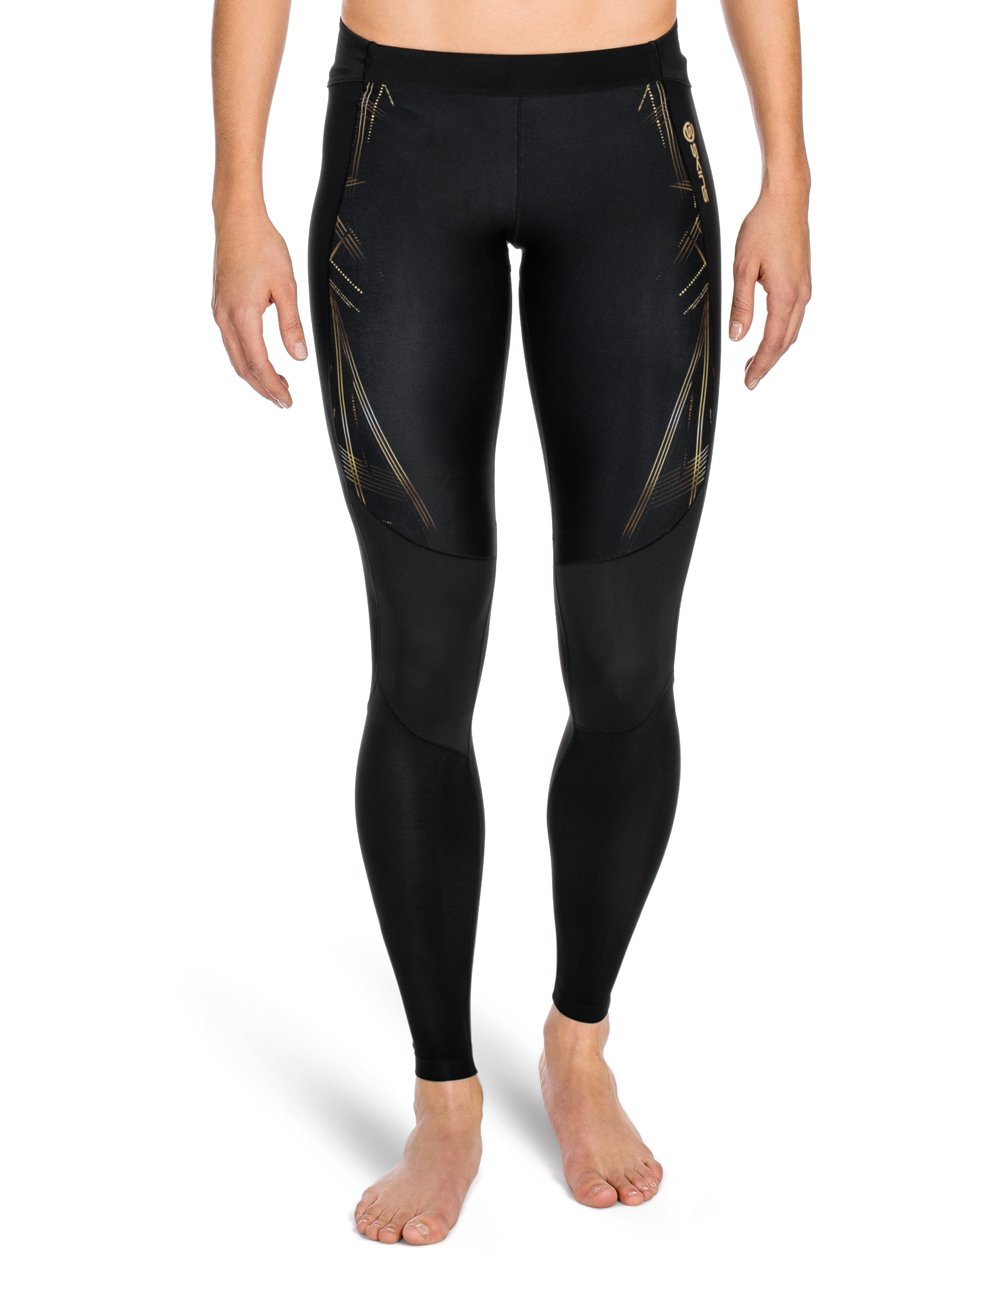 Skins Women's A400 Compression Long Tights, Black/Gold, Large